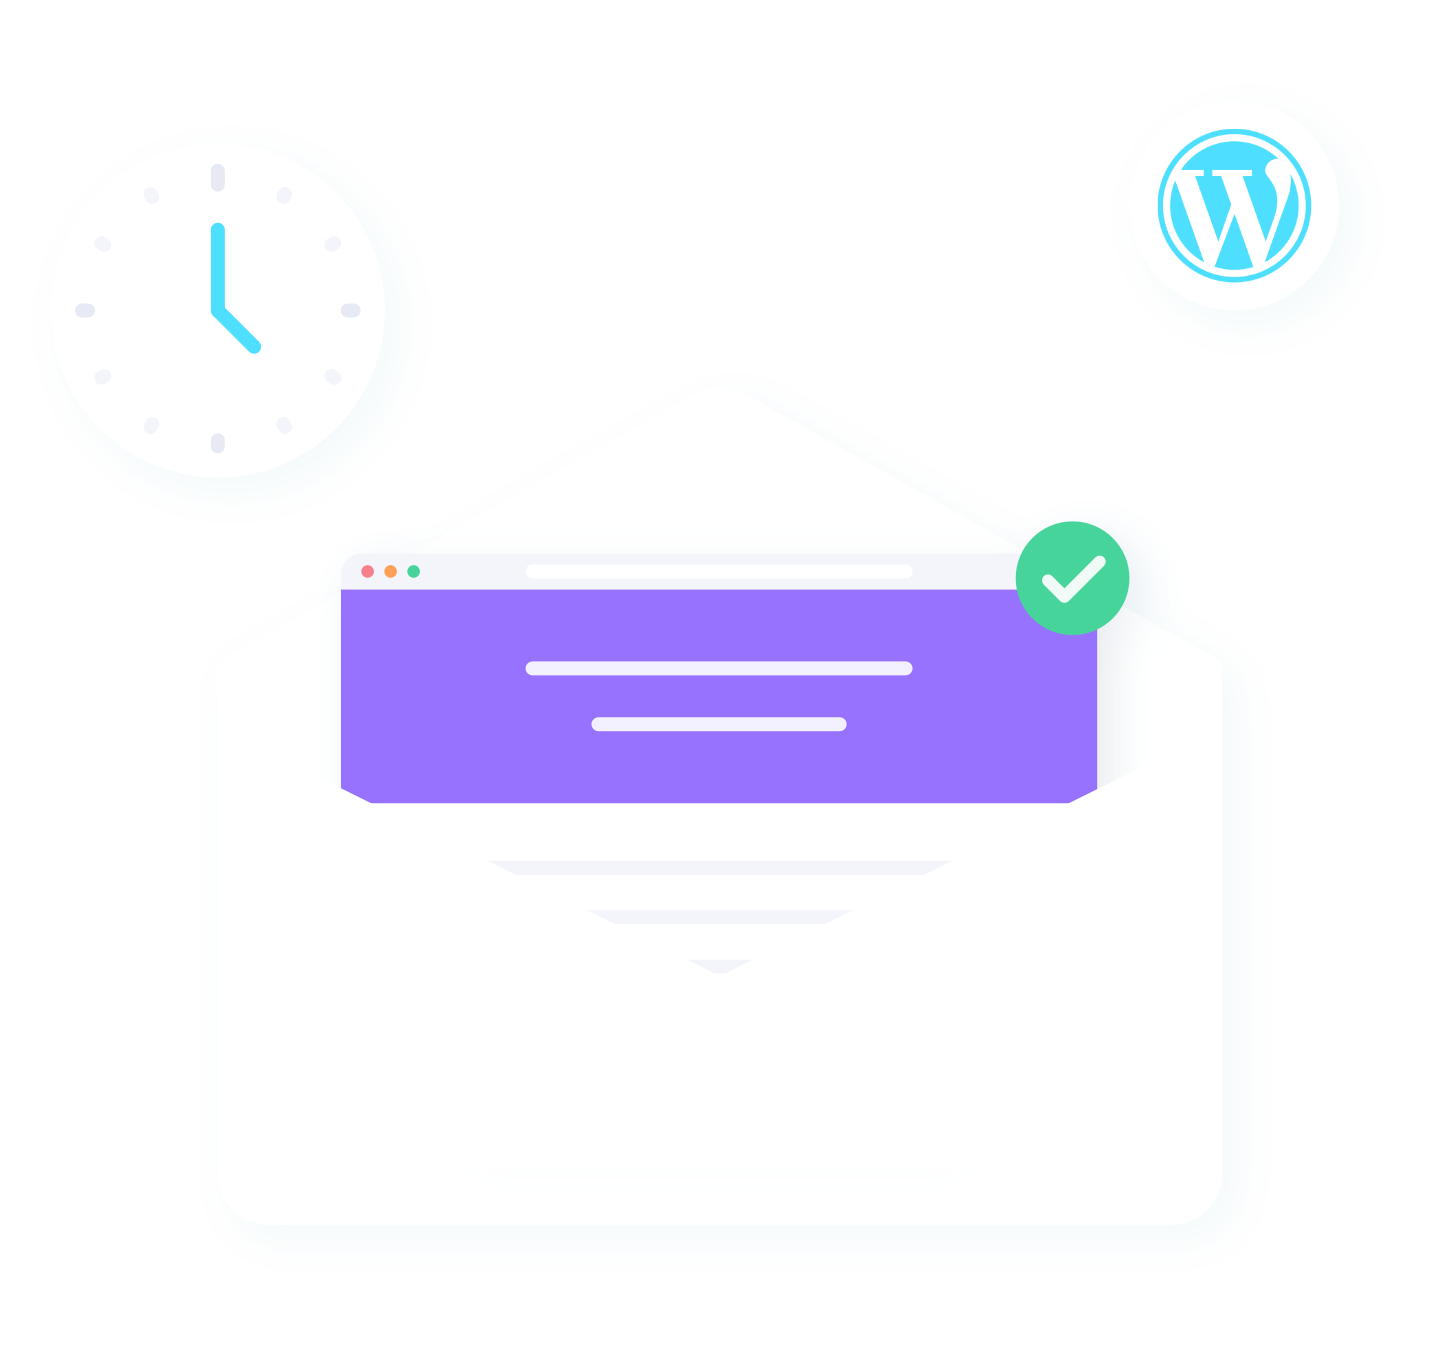 A white clock illustration and envelope illustration with a soft blue background. To the right is a WordPress logo.